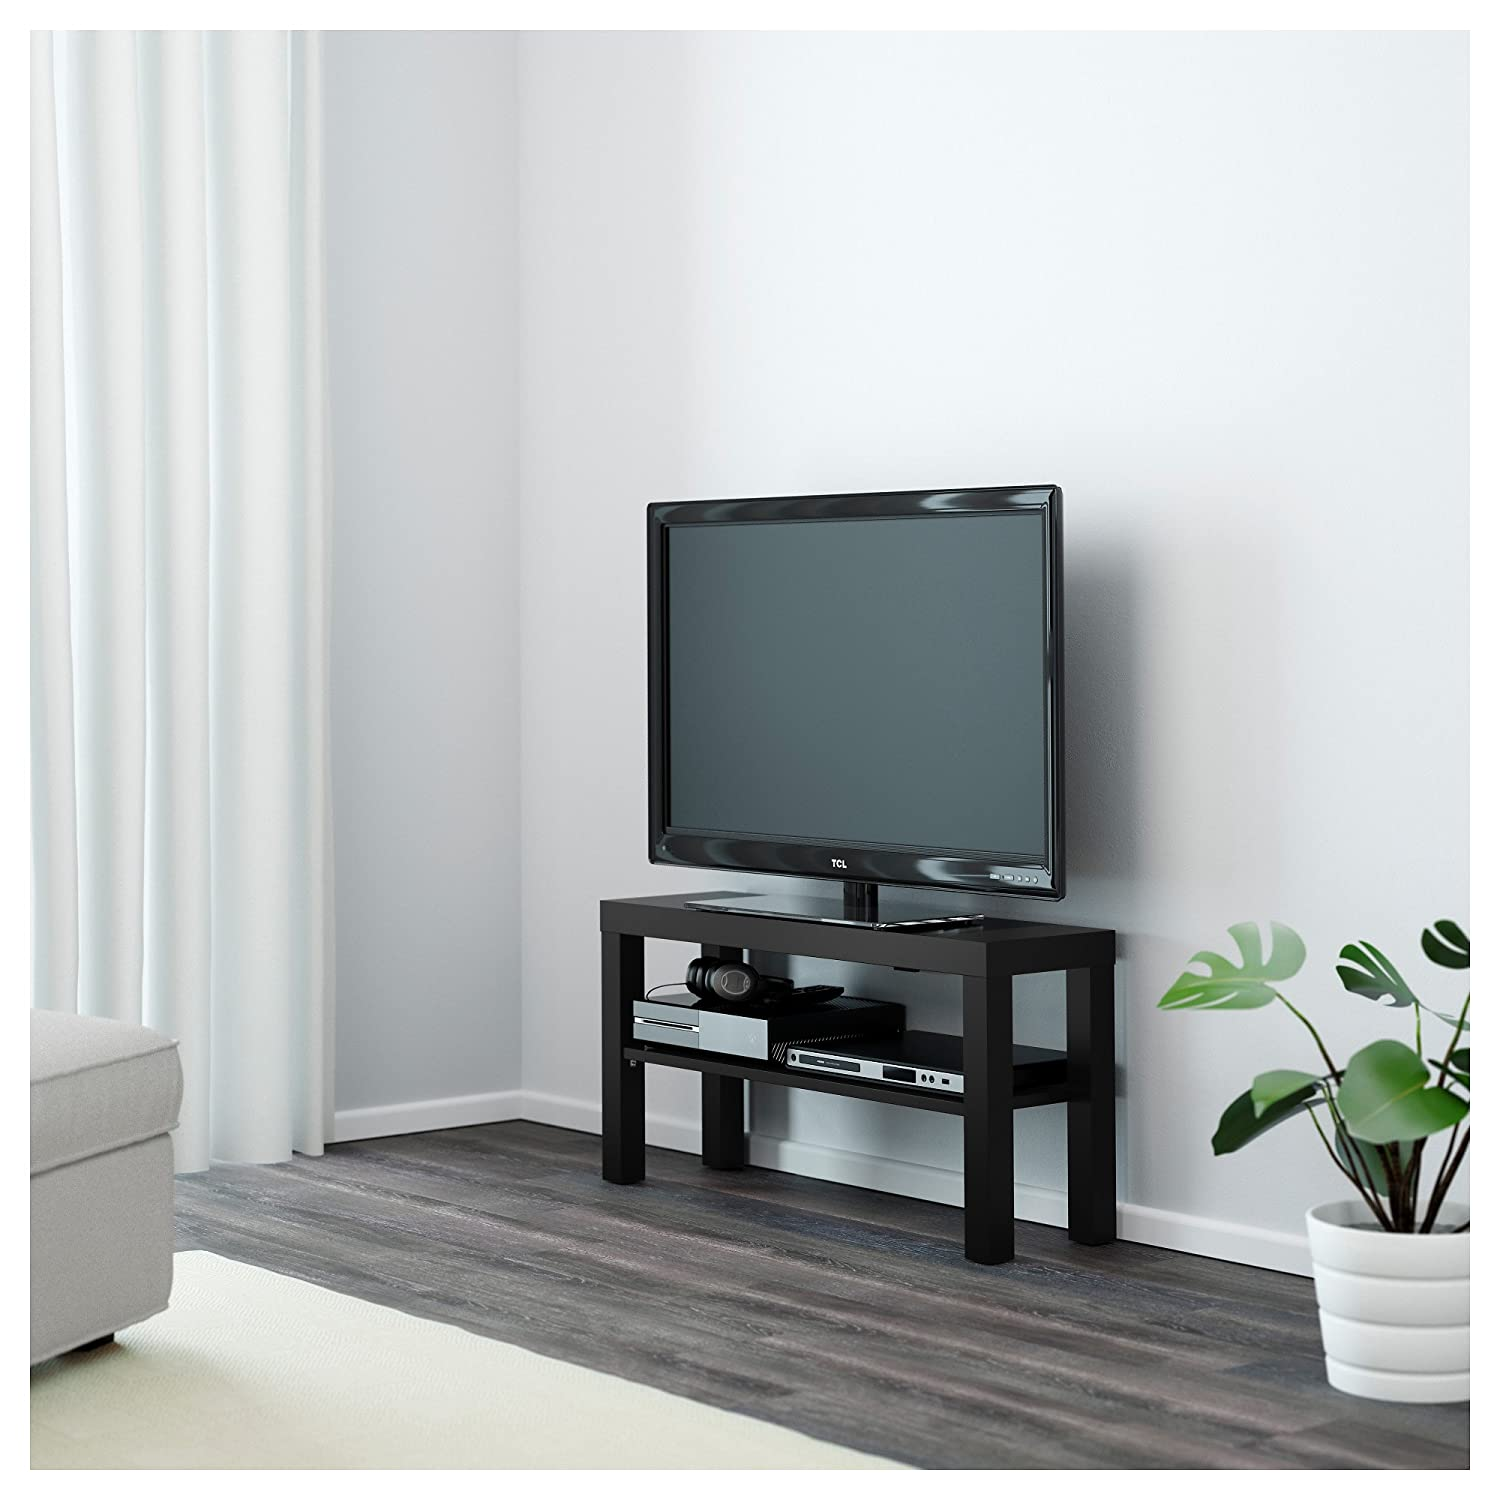 Ikea Banc Bas - Ikea Lack Tv Bench Black Tv Stand For Plasma Lcd Led Tv Amazon [mjhdah]http://becquet.fr/portailbcq_img/produits/zoom3/31260NOIR.jpg